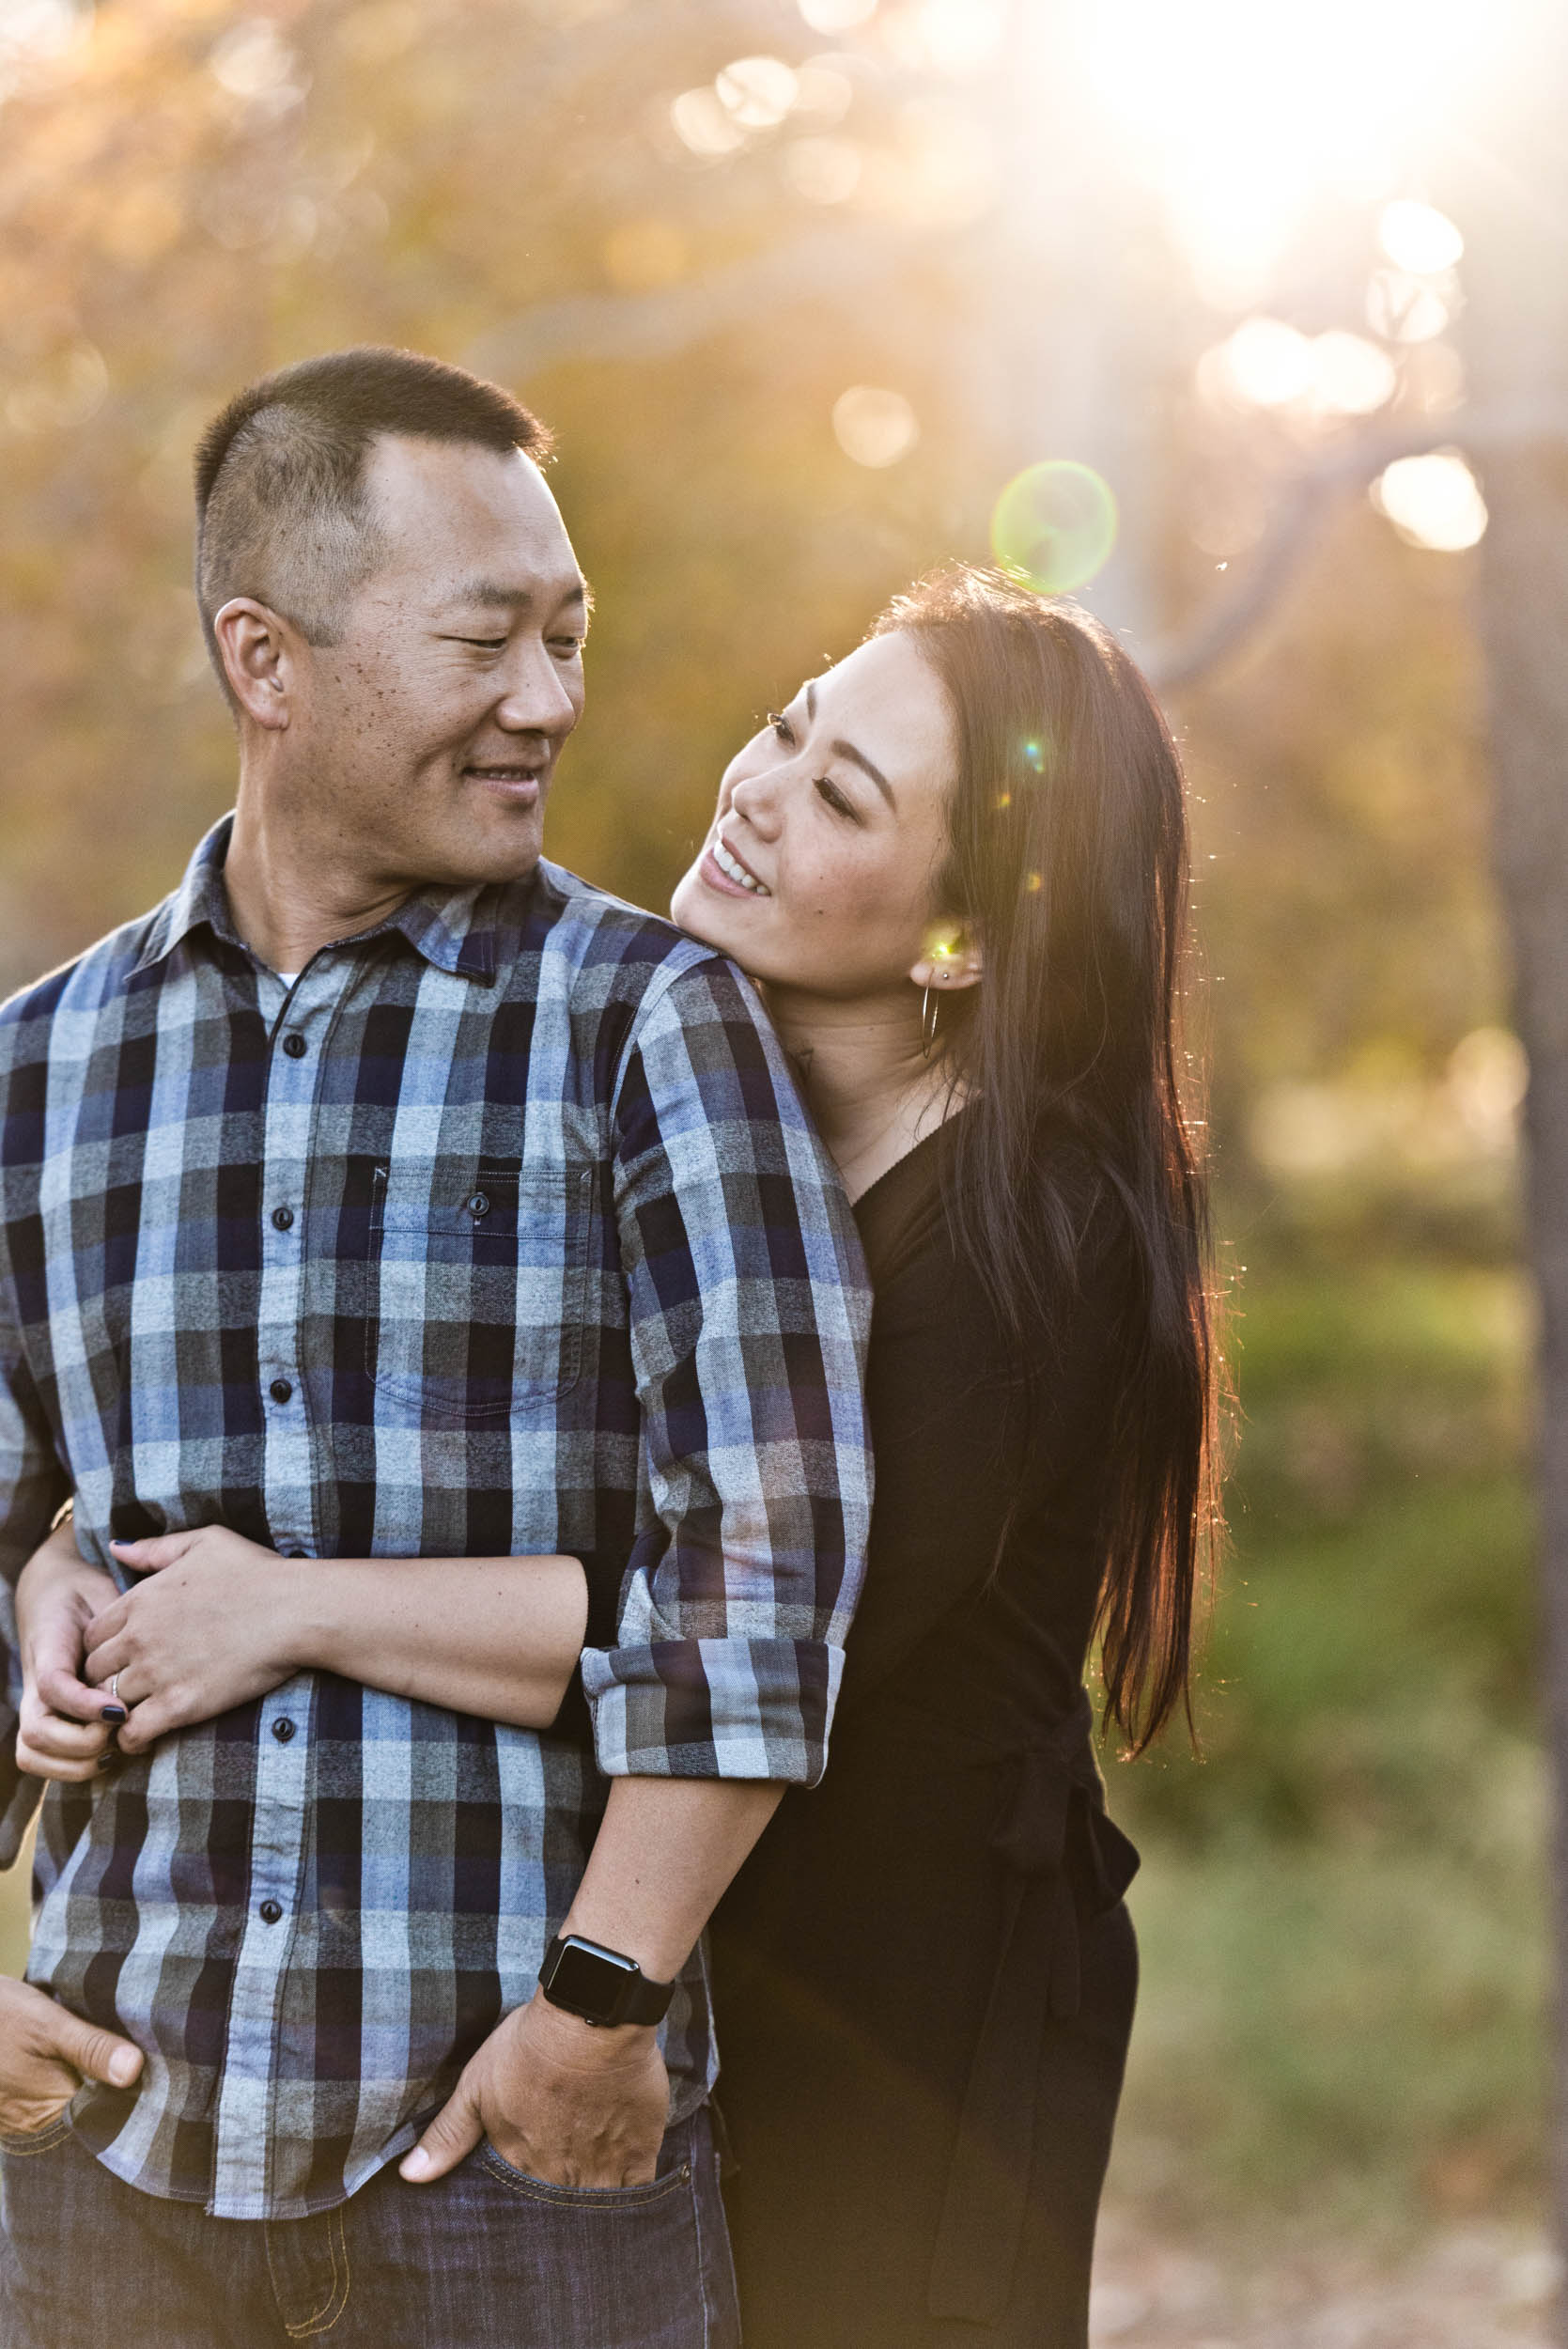 Asian couple. Mom holding dad and looking into each other's eyes in the park.